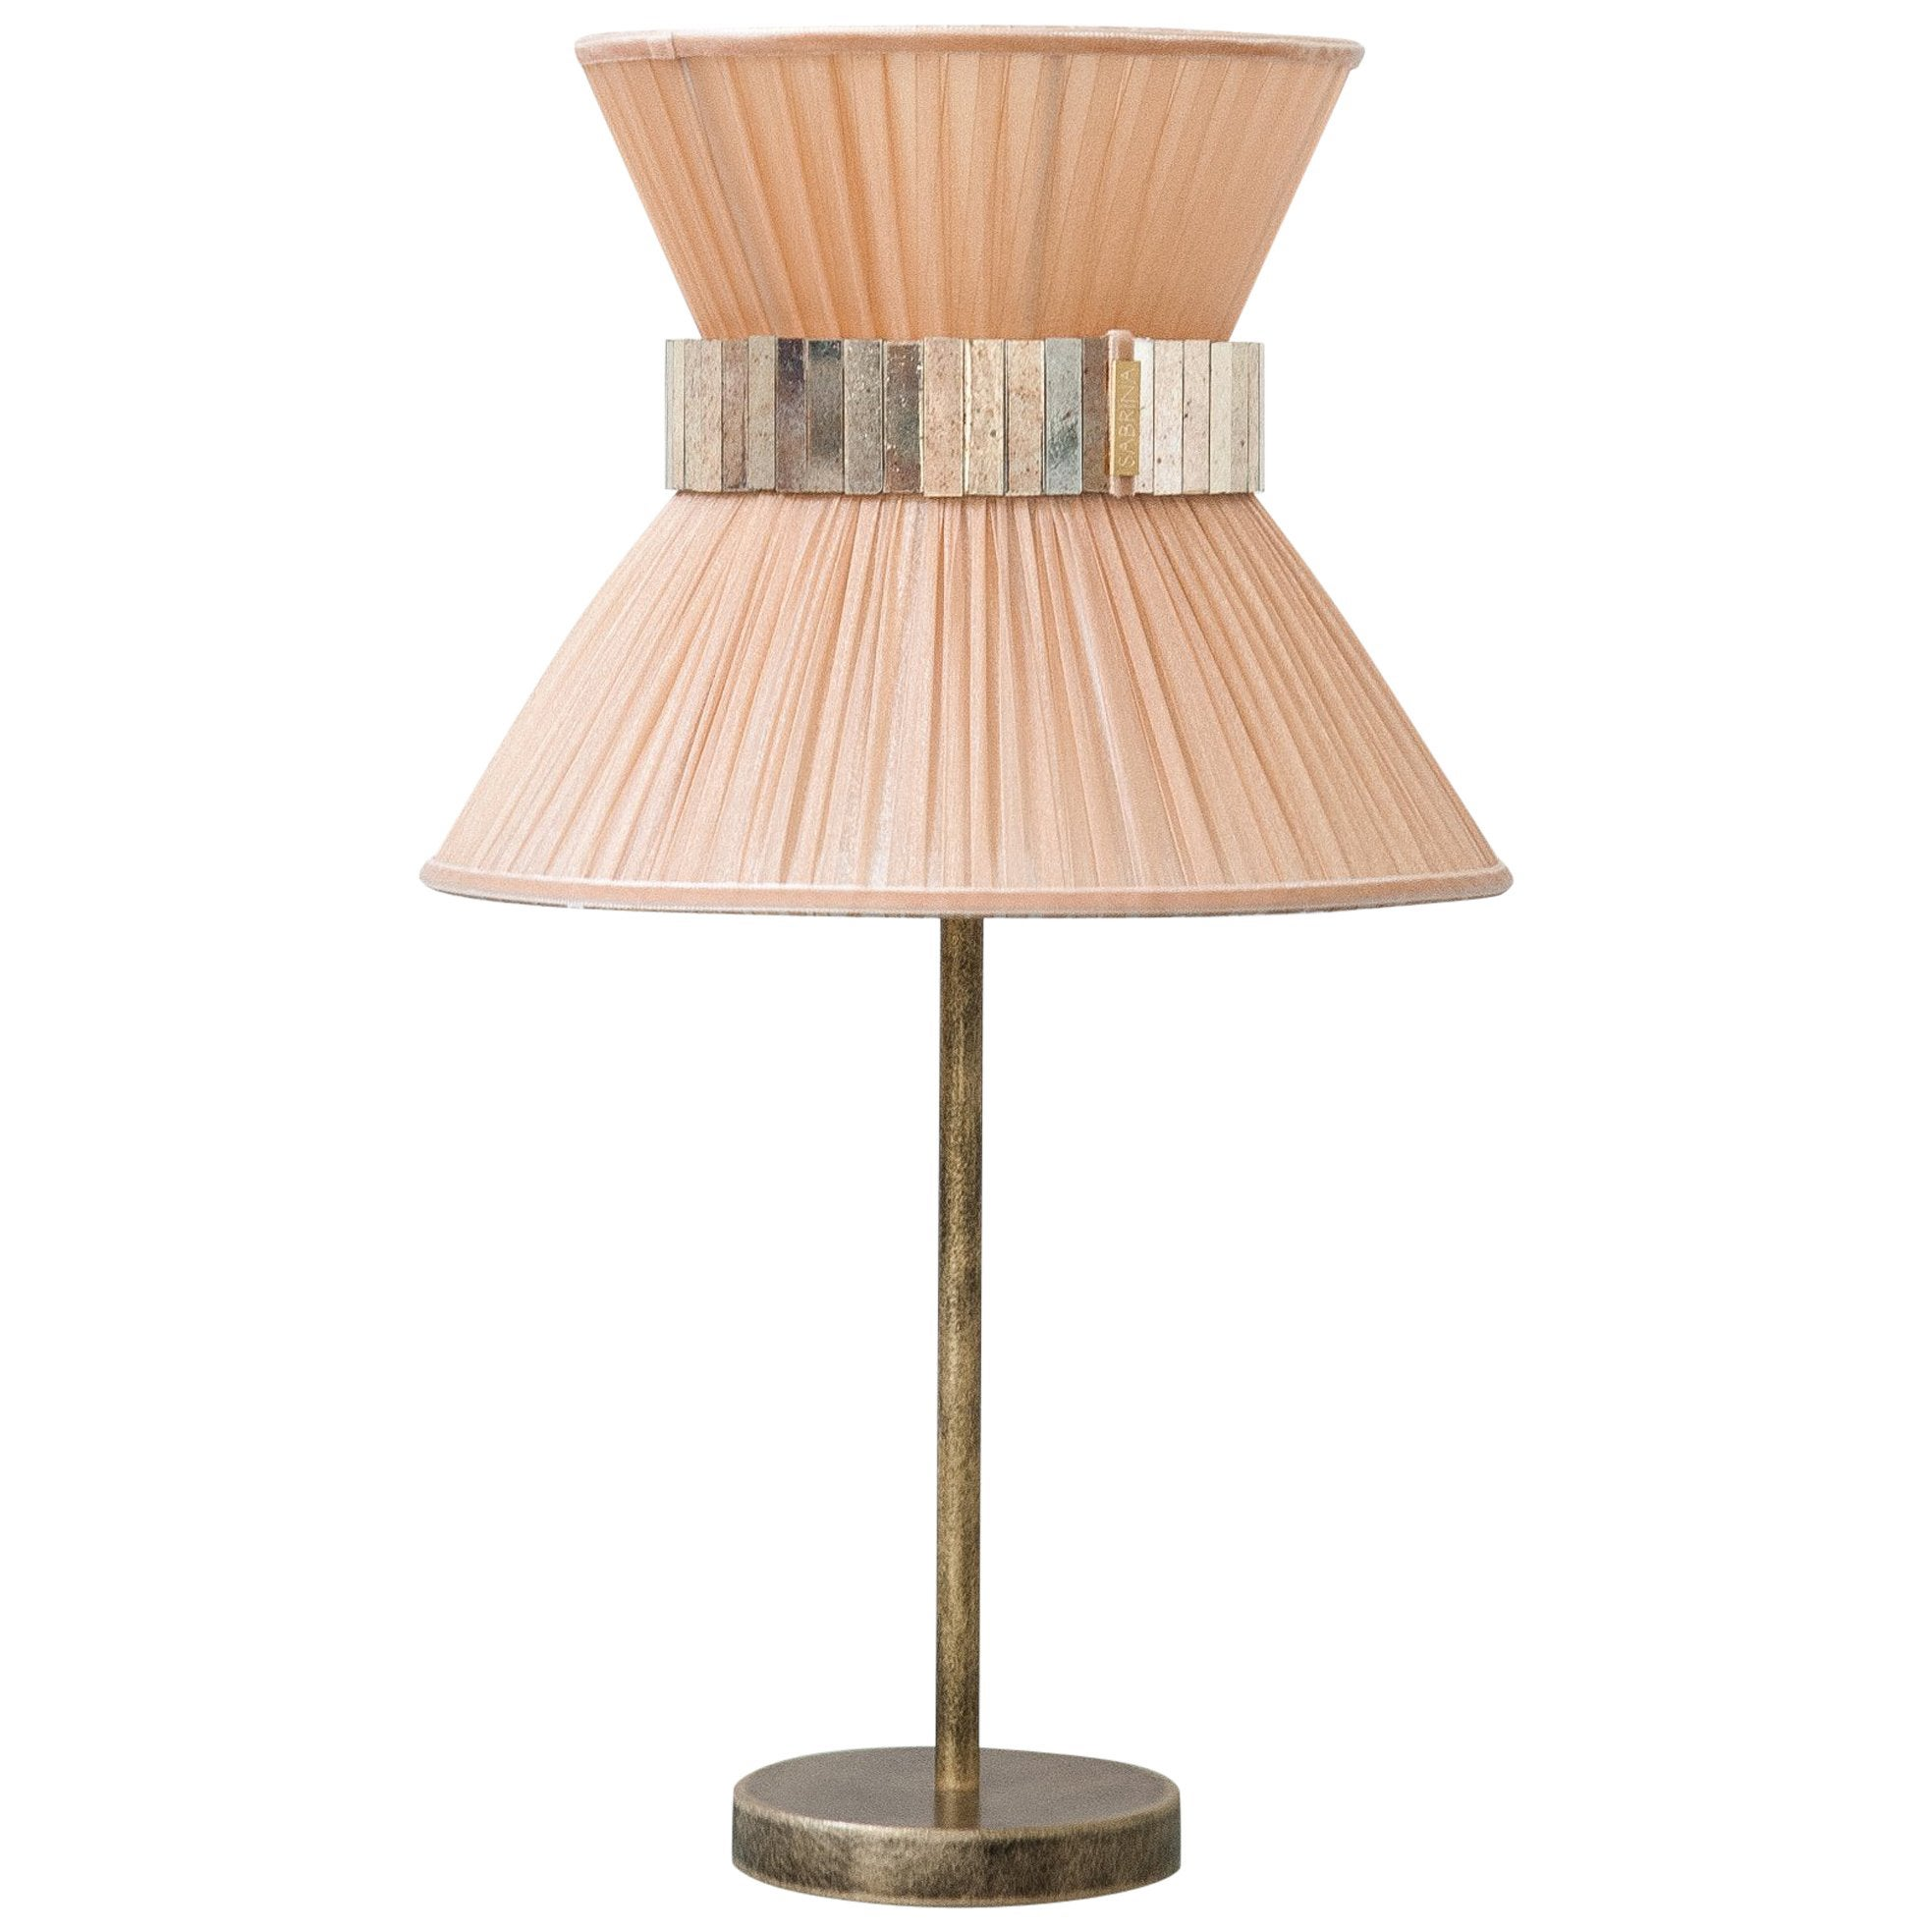 Tiffany contemporary table Lamp 23 powder Silk, Brass, Silvered Glass